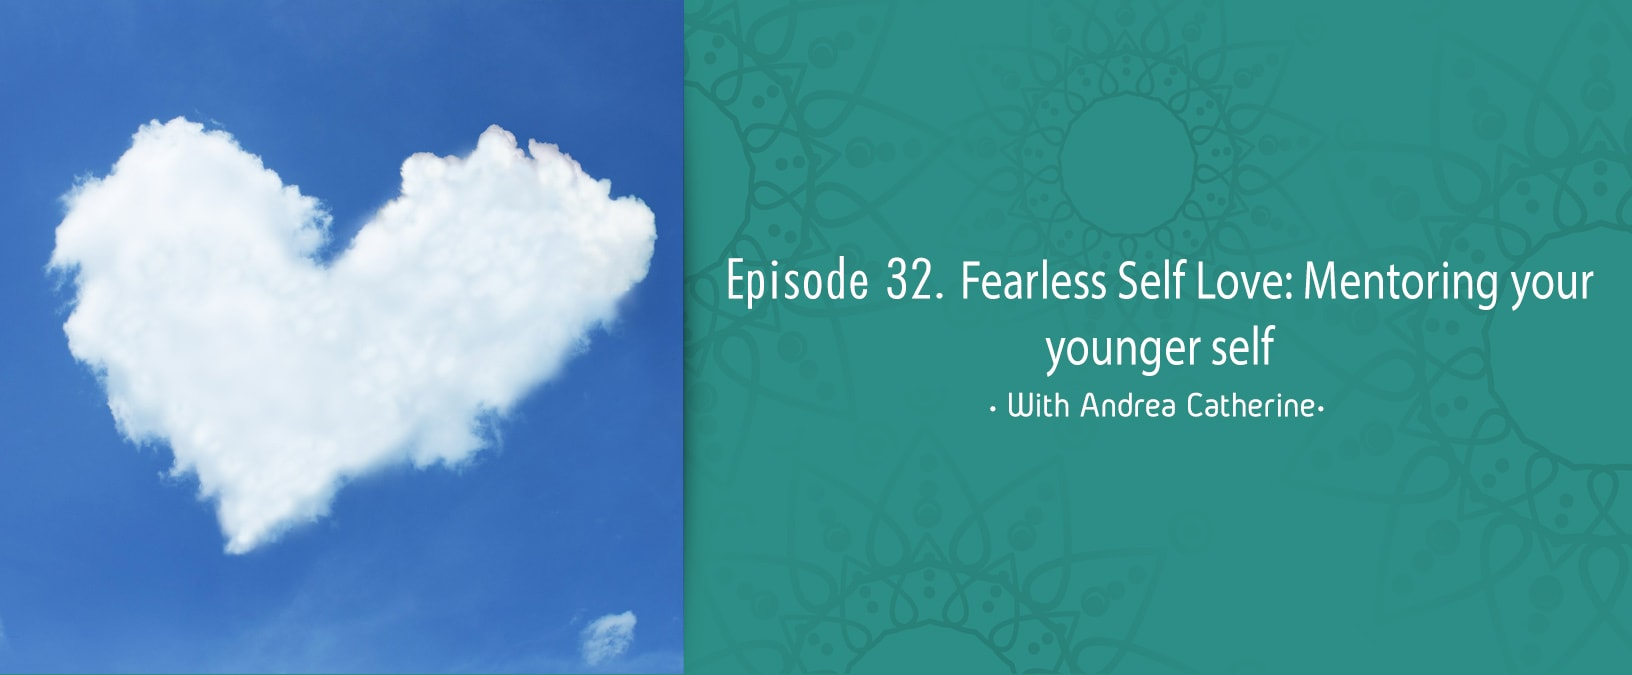 Fearless Self Love: Mentoring your younger self